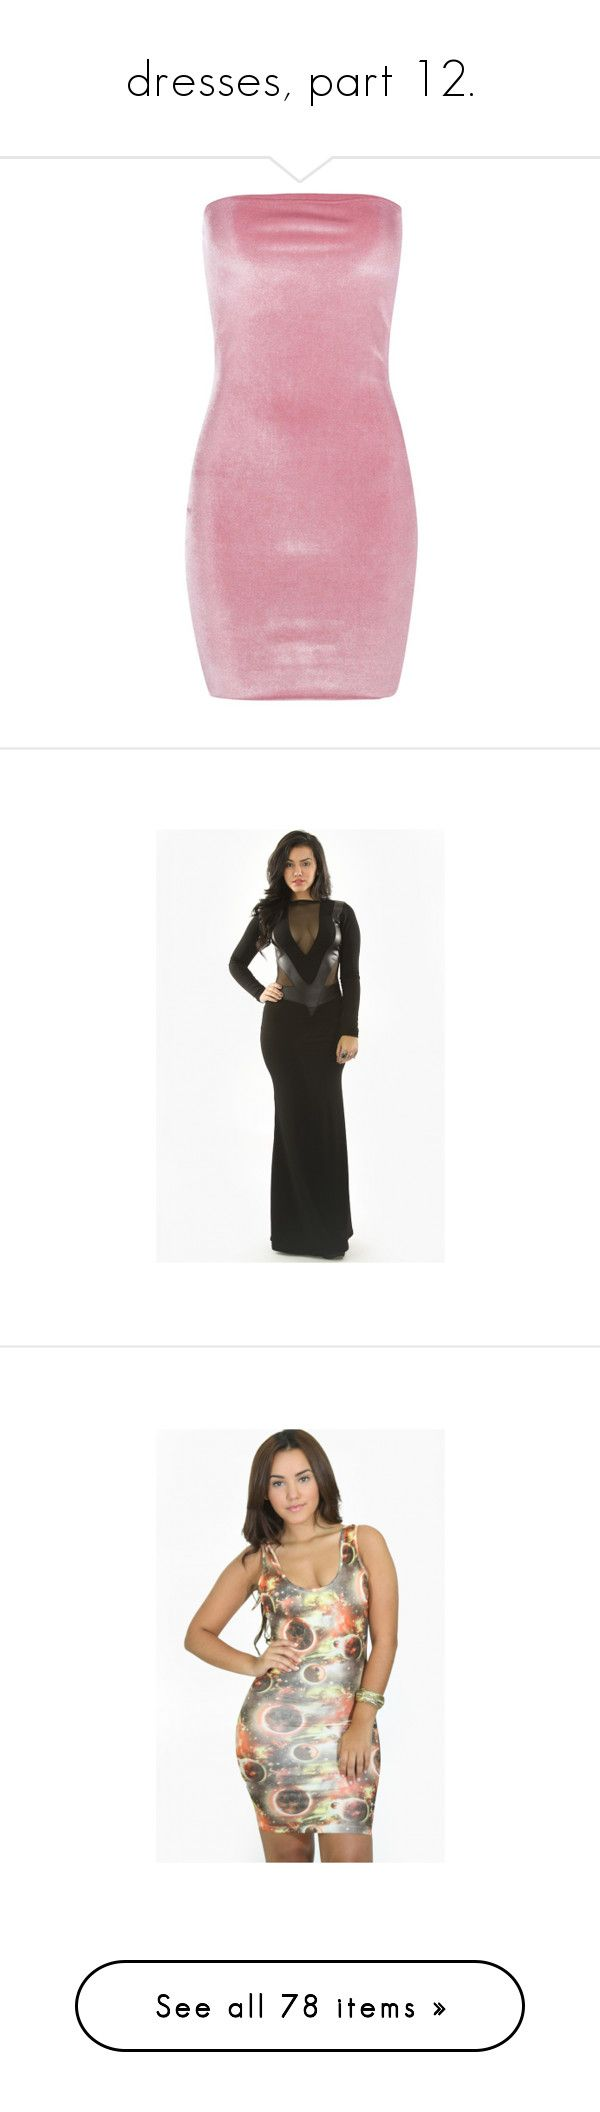 """""""dresses, part 12."""" by trillestqueen ❤ liked on Polyvore featuring dresses, jersey maxi dress, petite maxi dresses, pink cocktail dress, velvet bodycon dress, petite dresses, nude, evening party dresses, cocktail party dress and short cocktail dresses"""